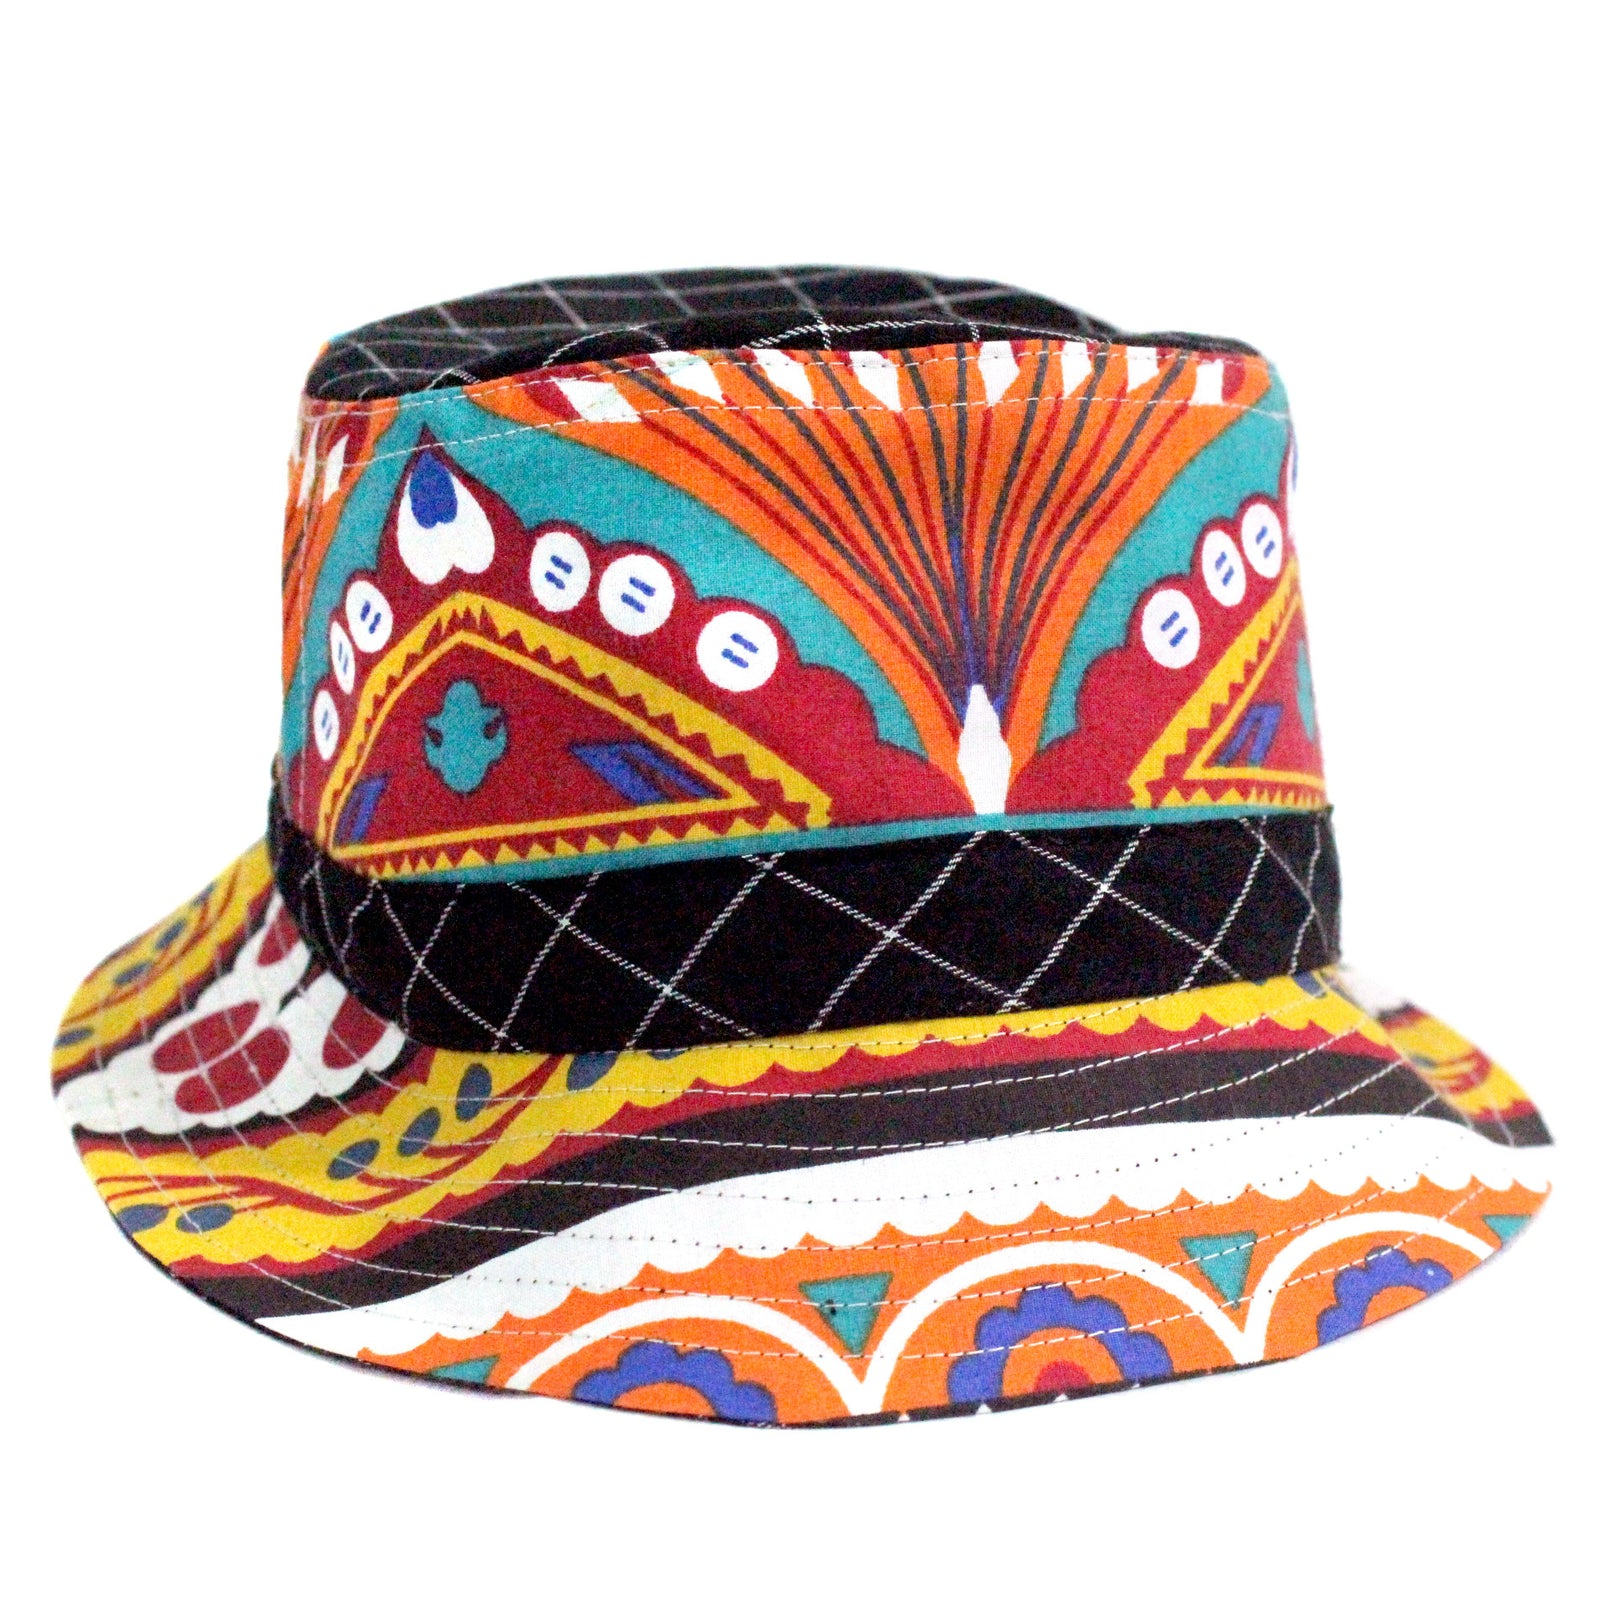 Handcrafted Bucket Hat for some music festival fashion inspiration , in cotton fabric with prints that were inspired by pakistani truck art